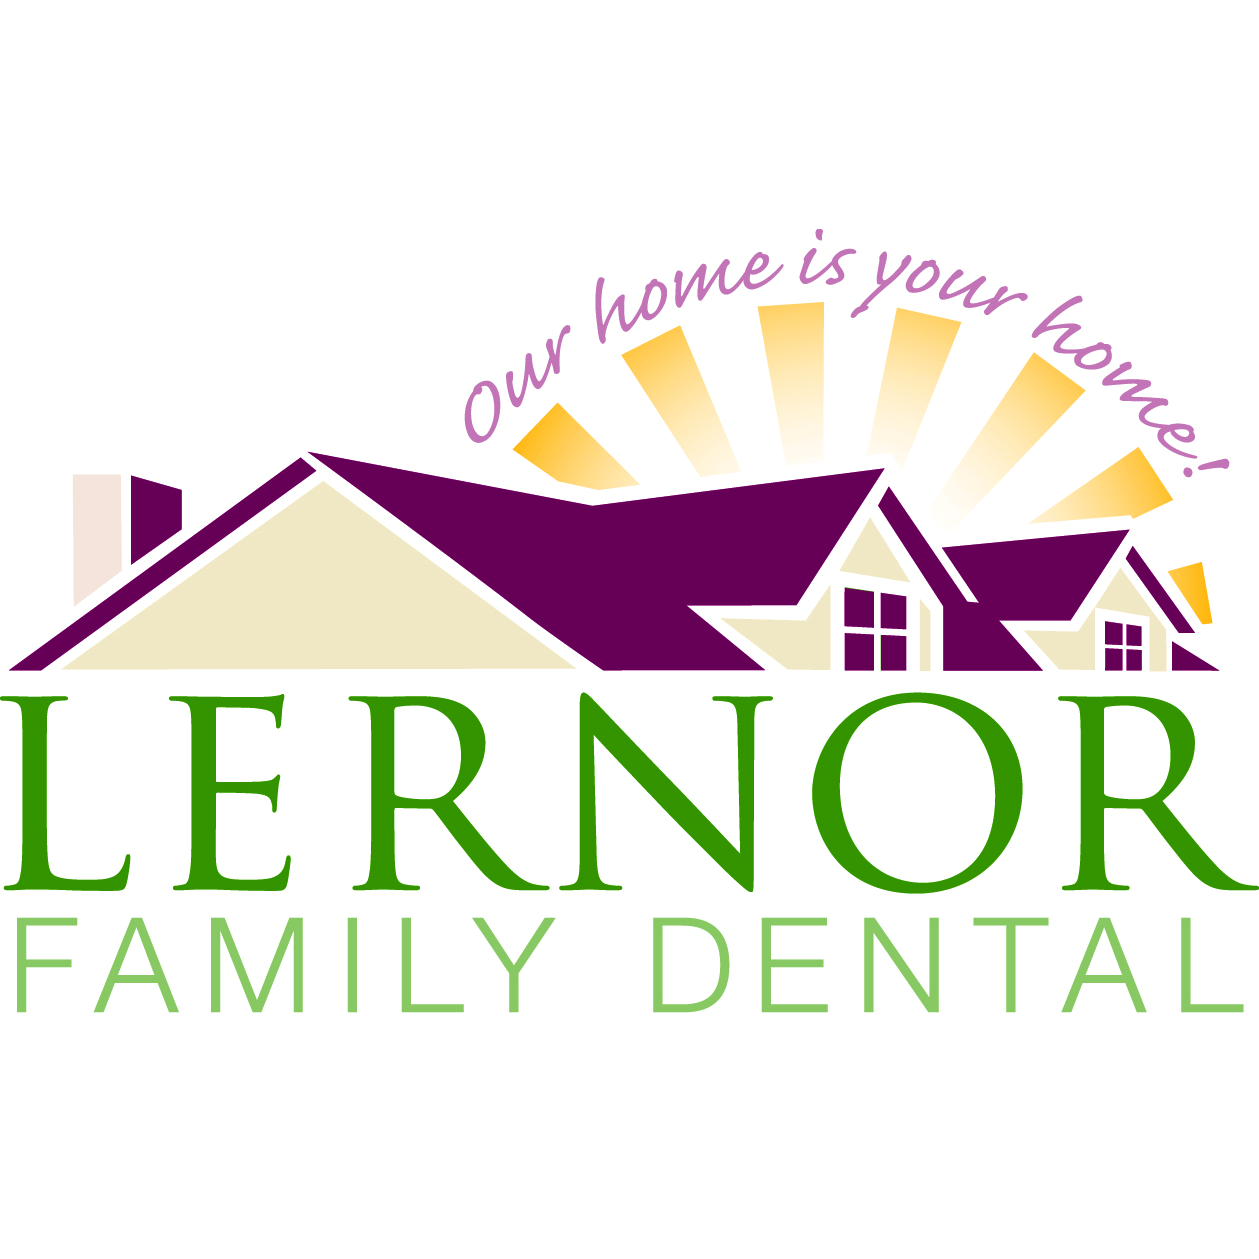 Health and medical business in phoenix az united states lernor family dental 1betcityfo Gallery